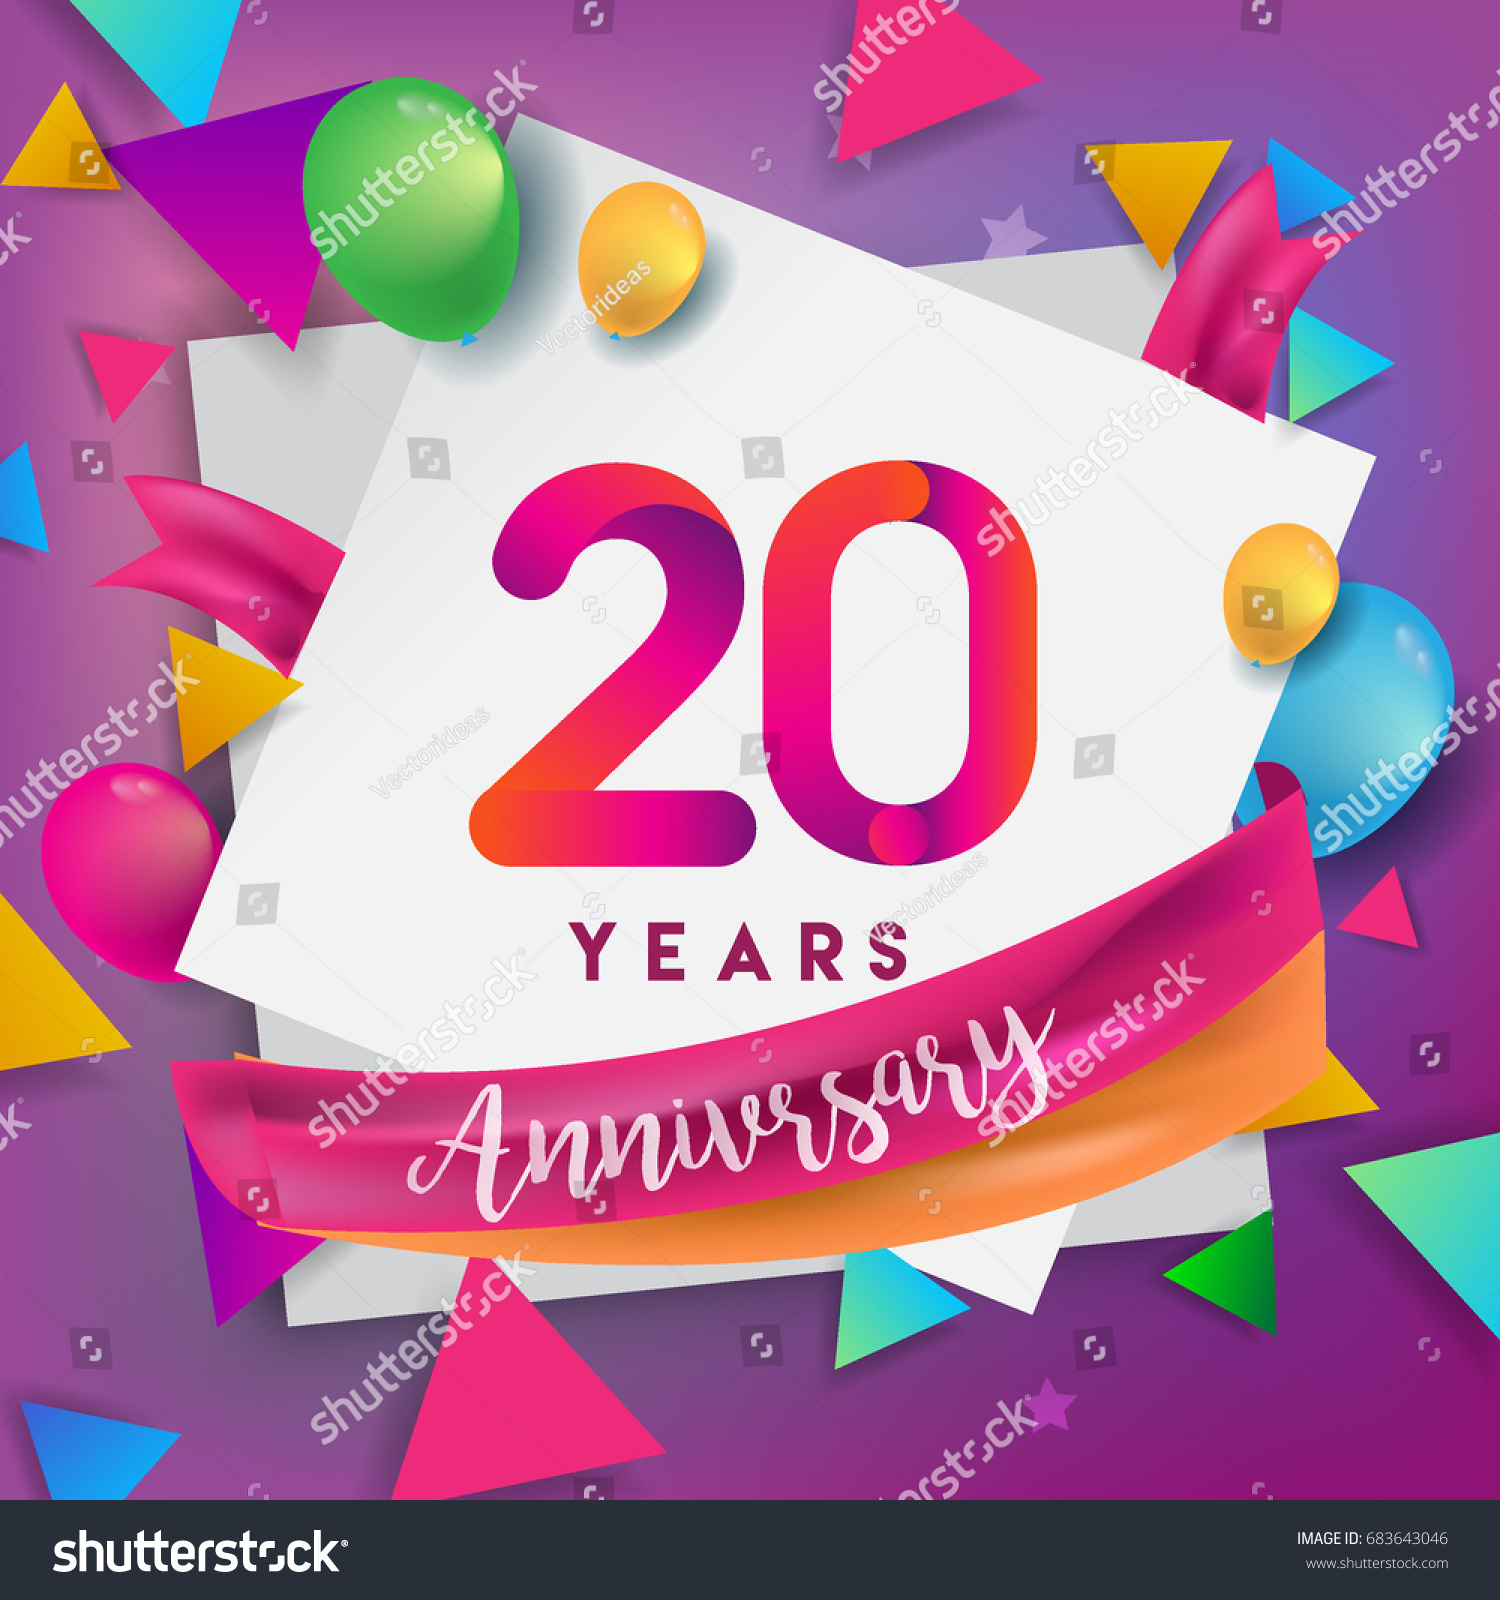 20th years anniversary celebration design balloons and ribbon colorful design elements for banner